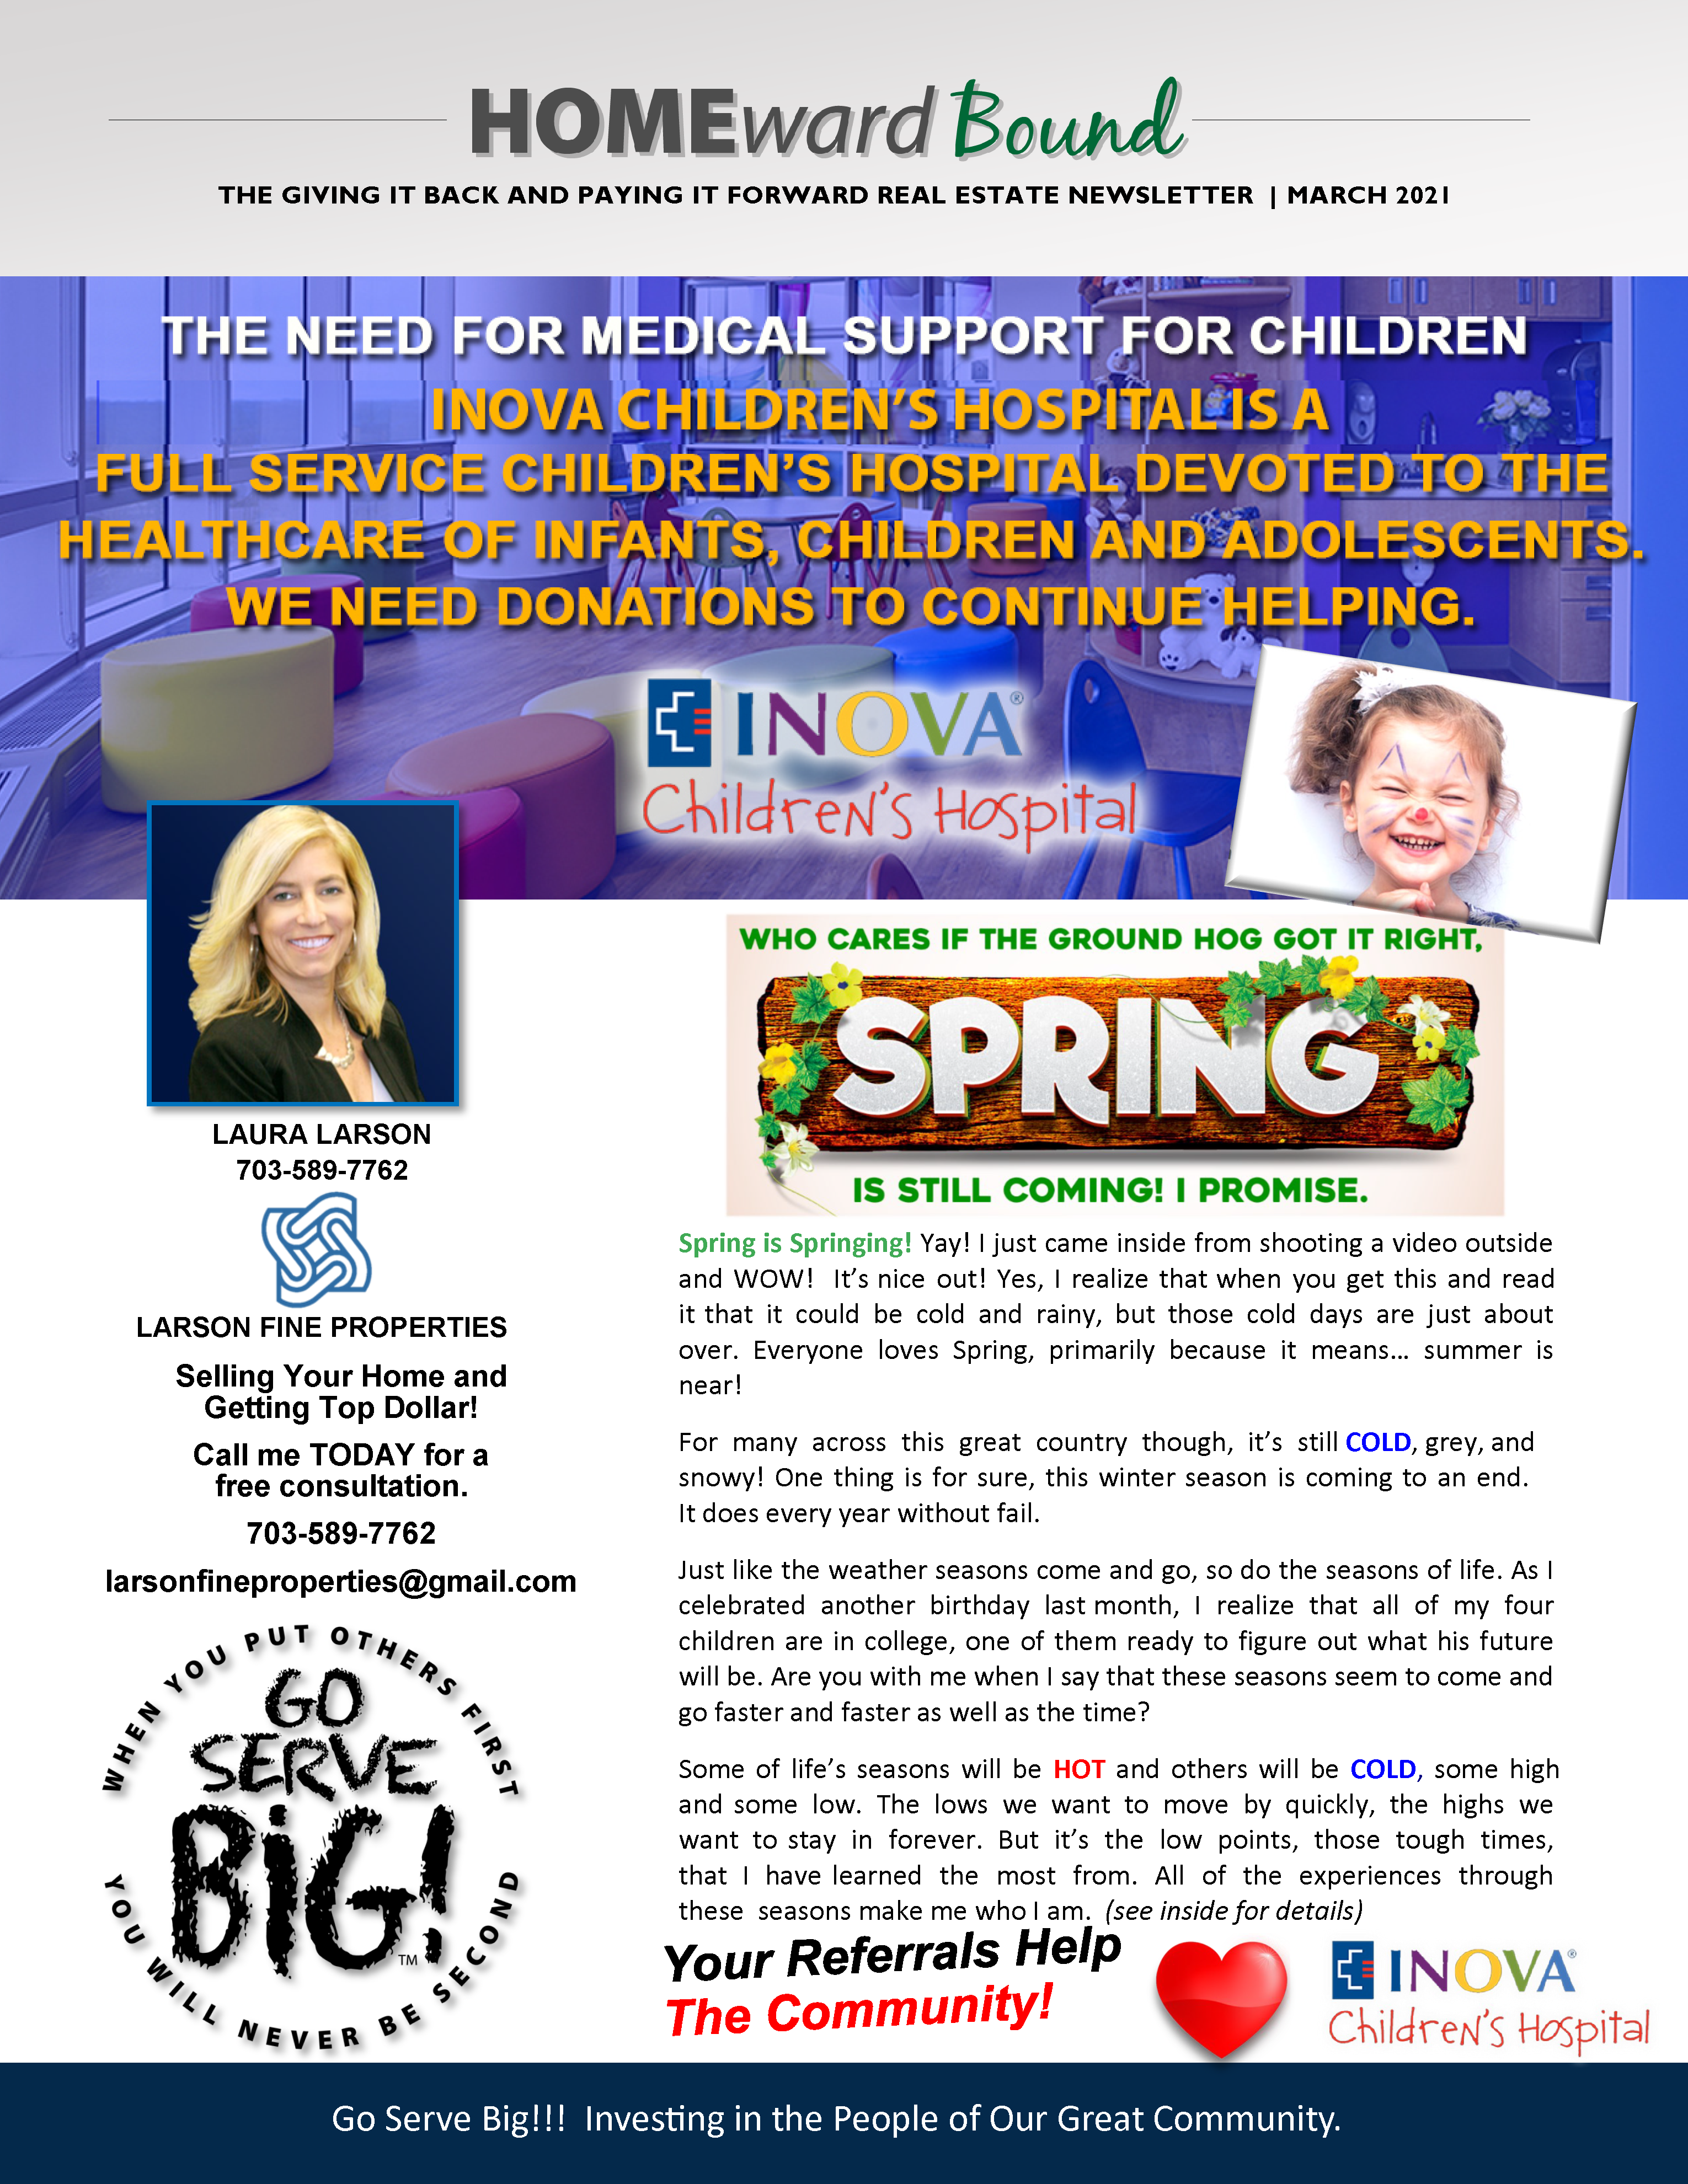 Homeward Bound Newsletter - March (FOR PRINT)_Page_1.png